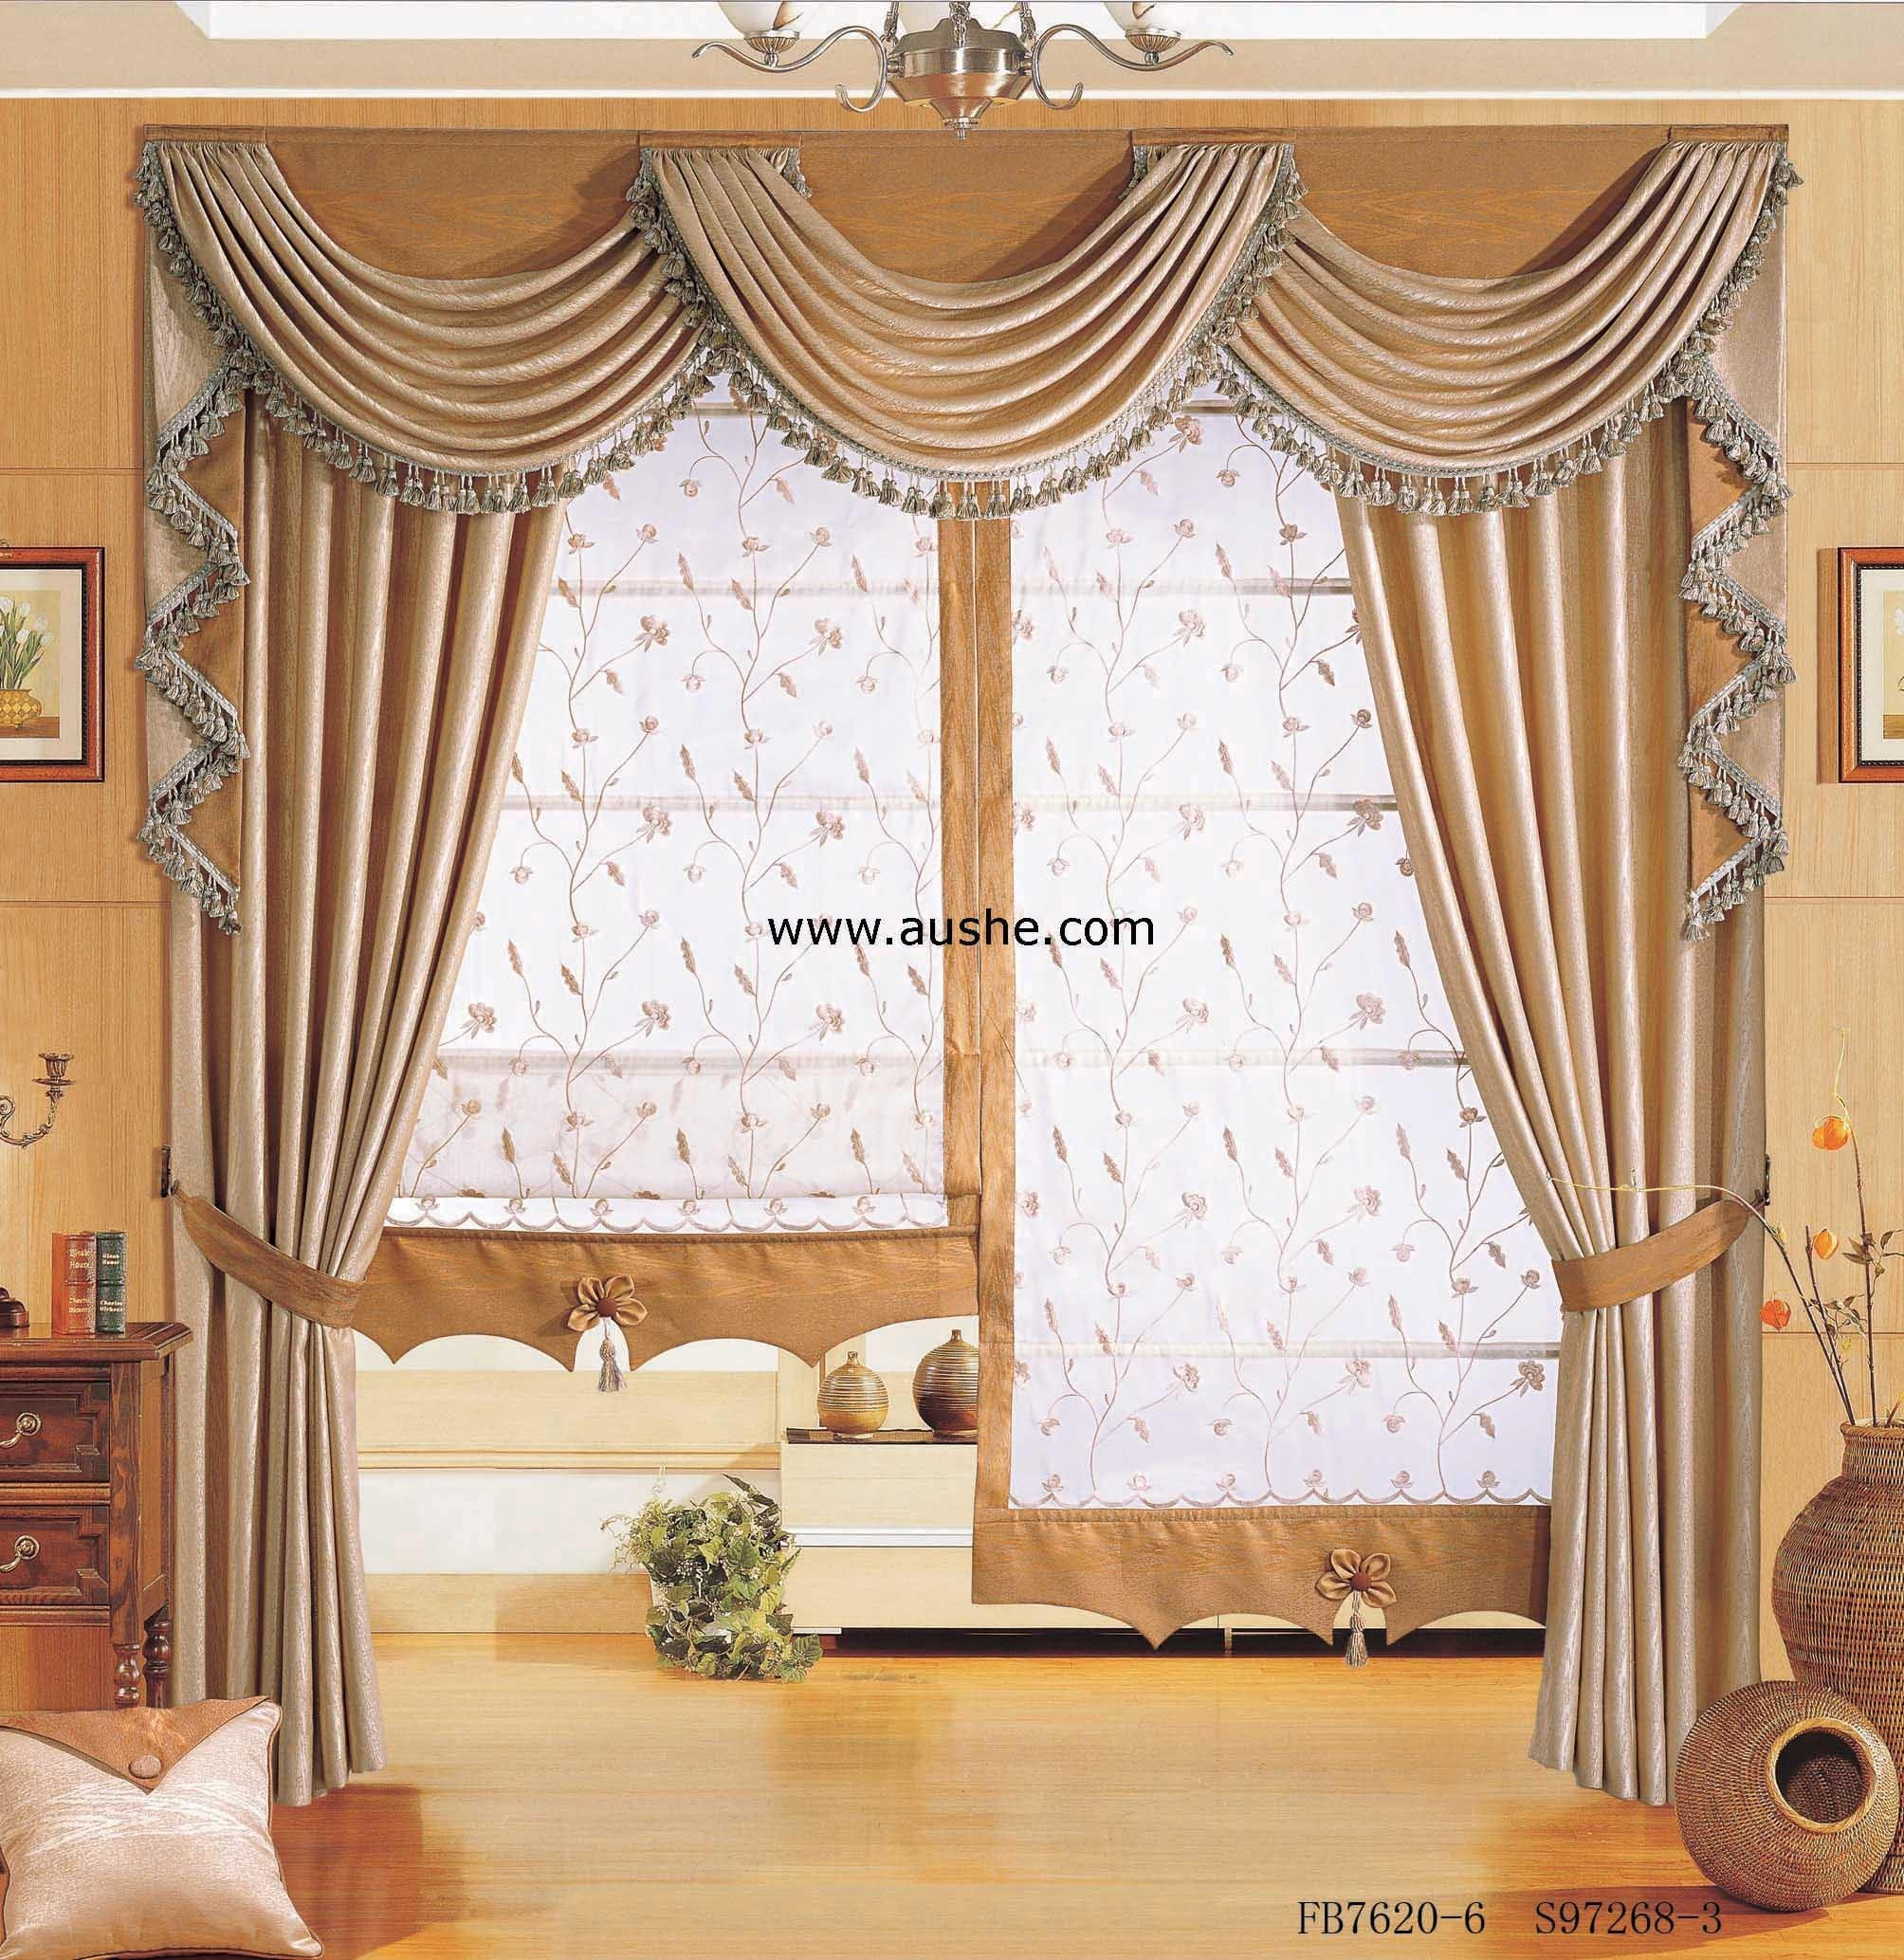 Jcpenney Sheer Curtains Valance Drapes